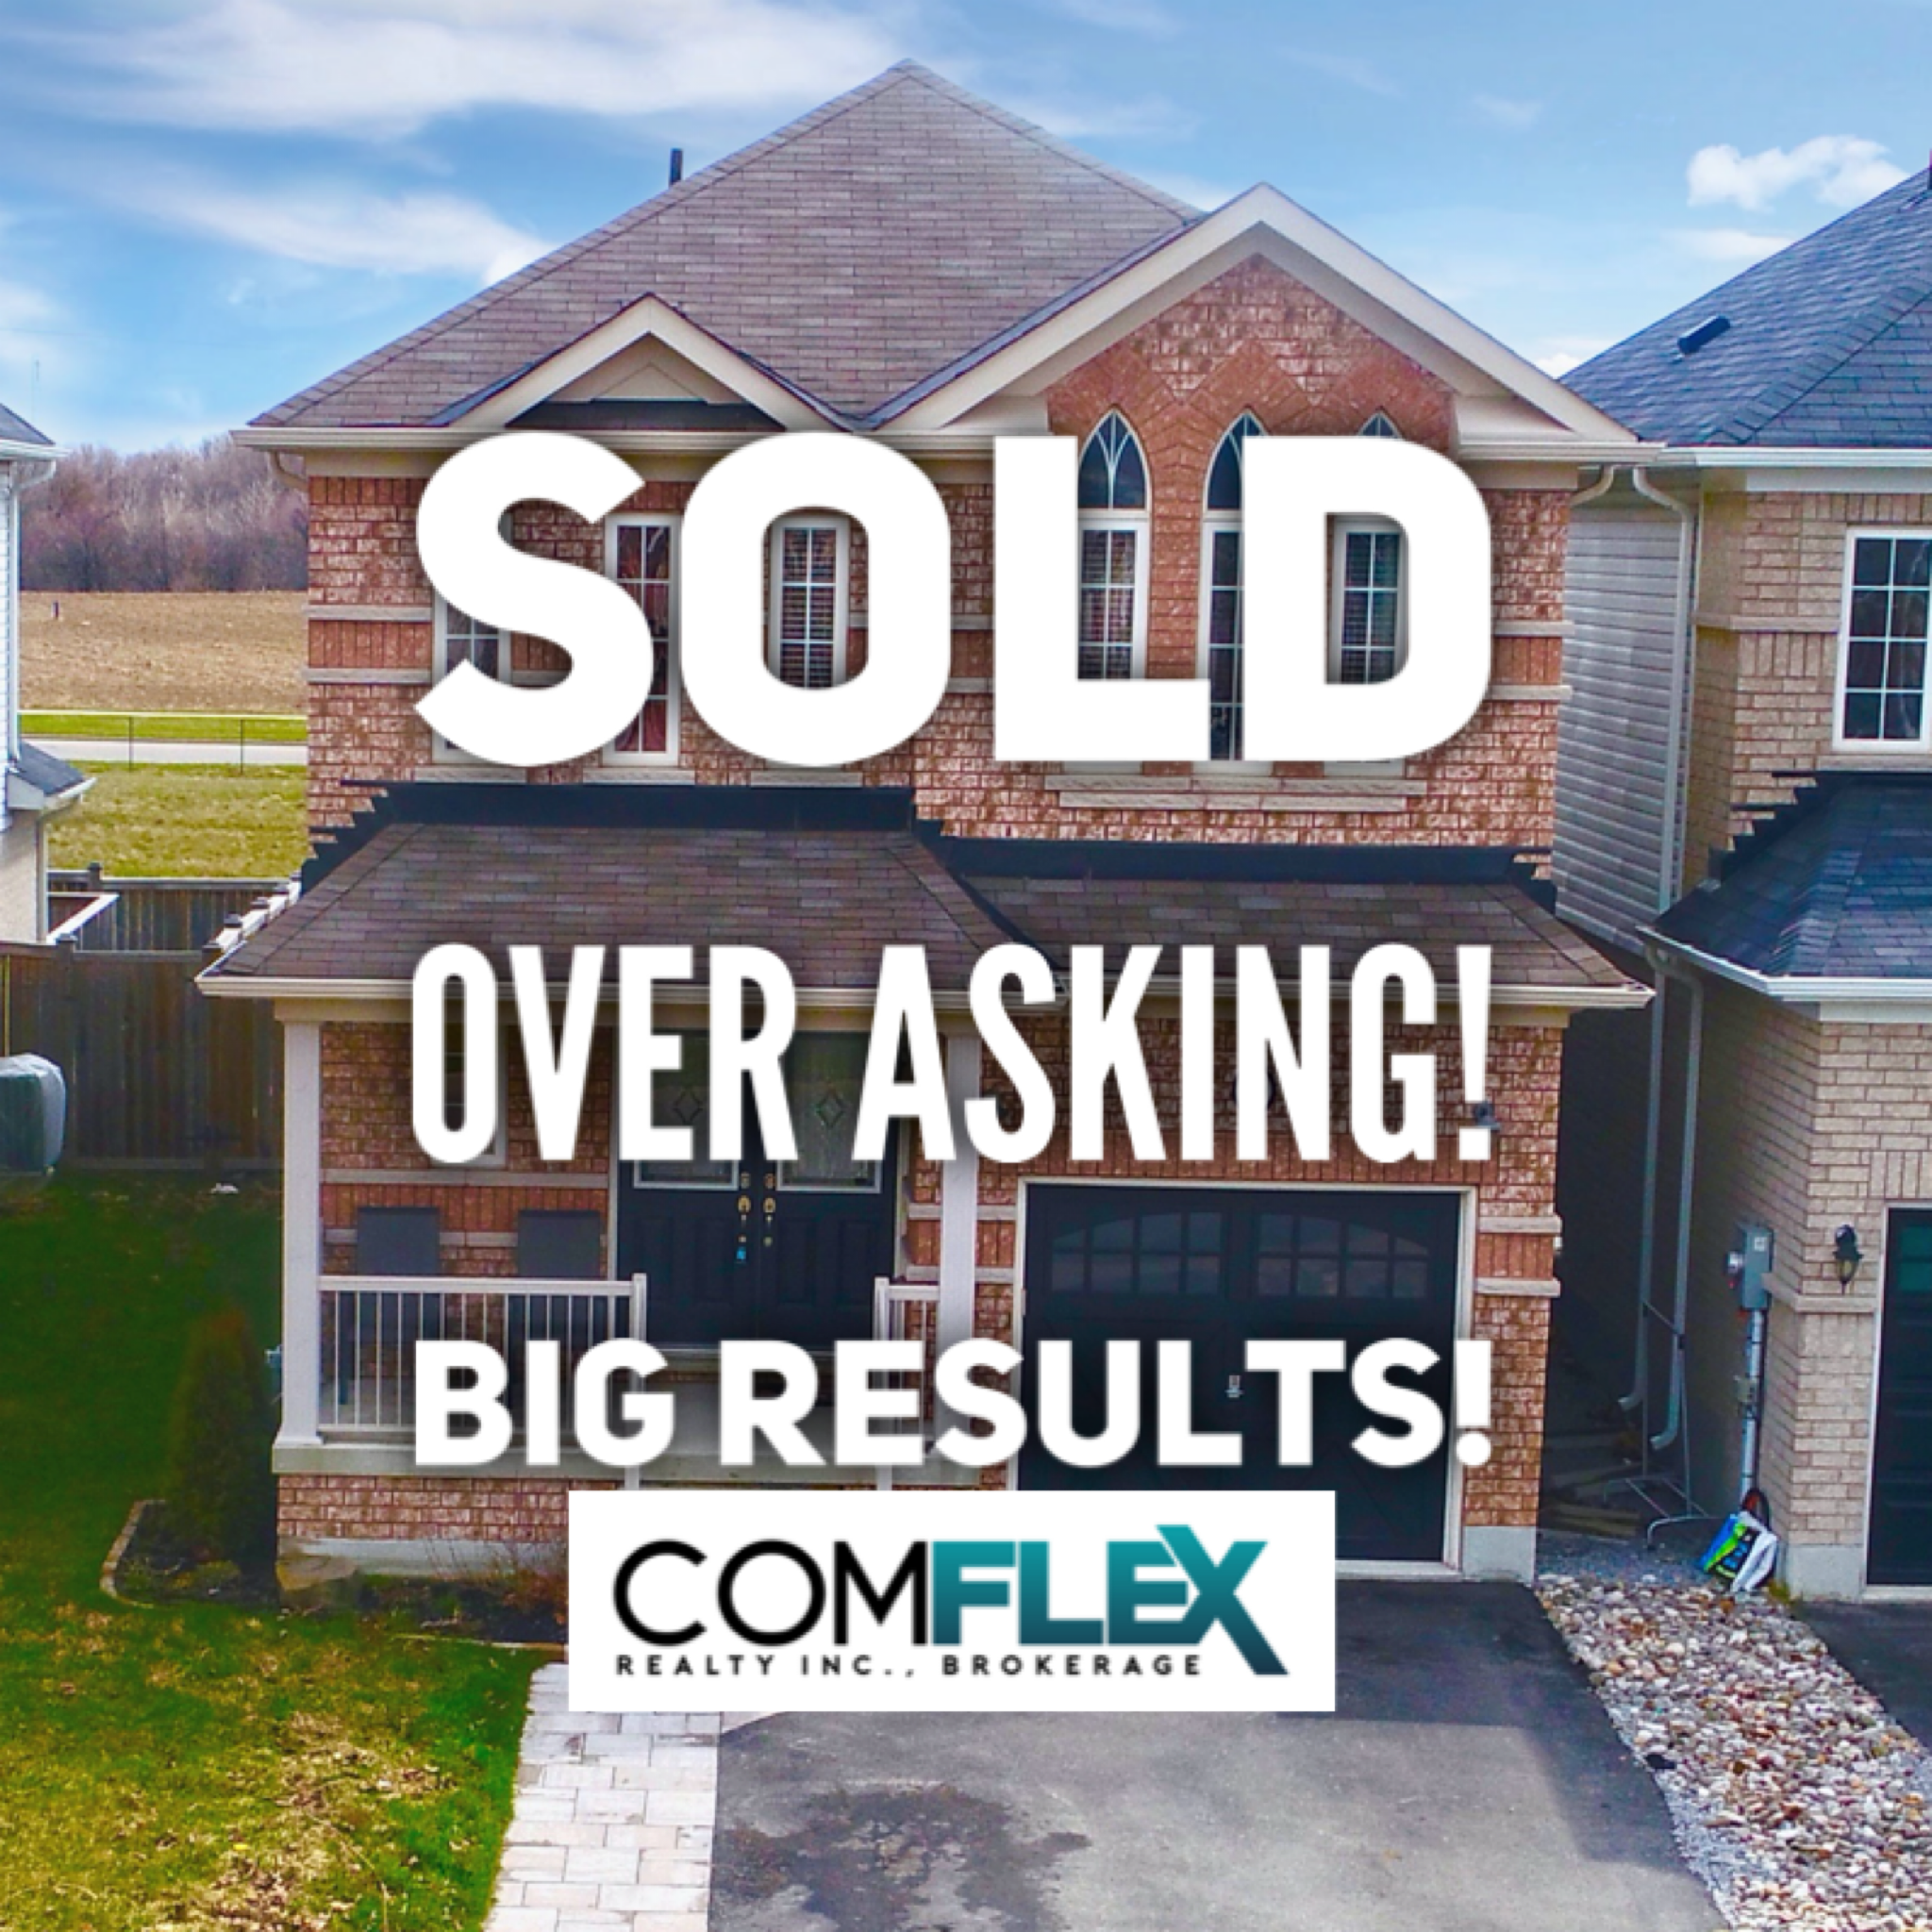 SOLD OVER ASKING! YOU COULD BE NEXT!